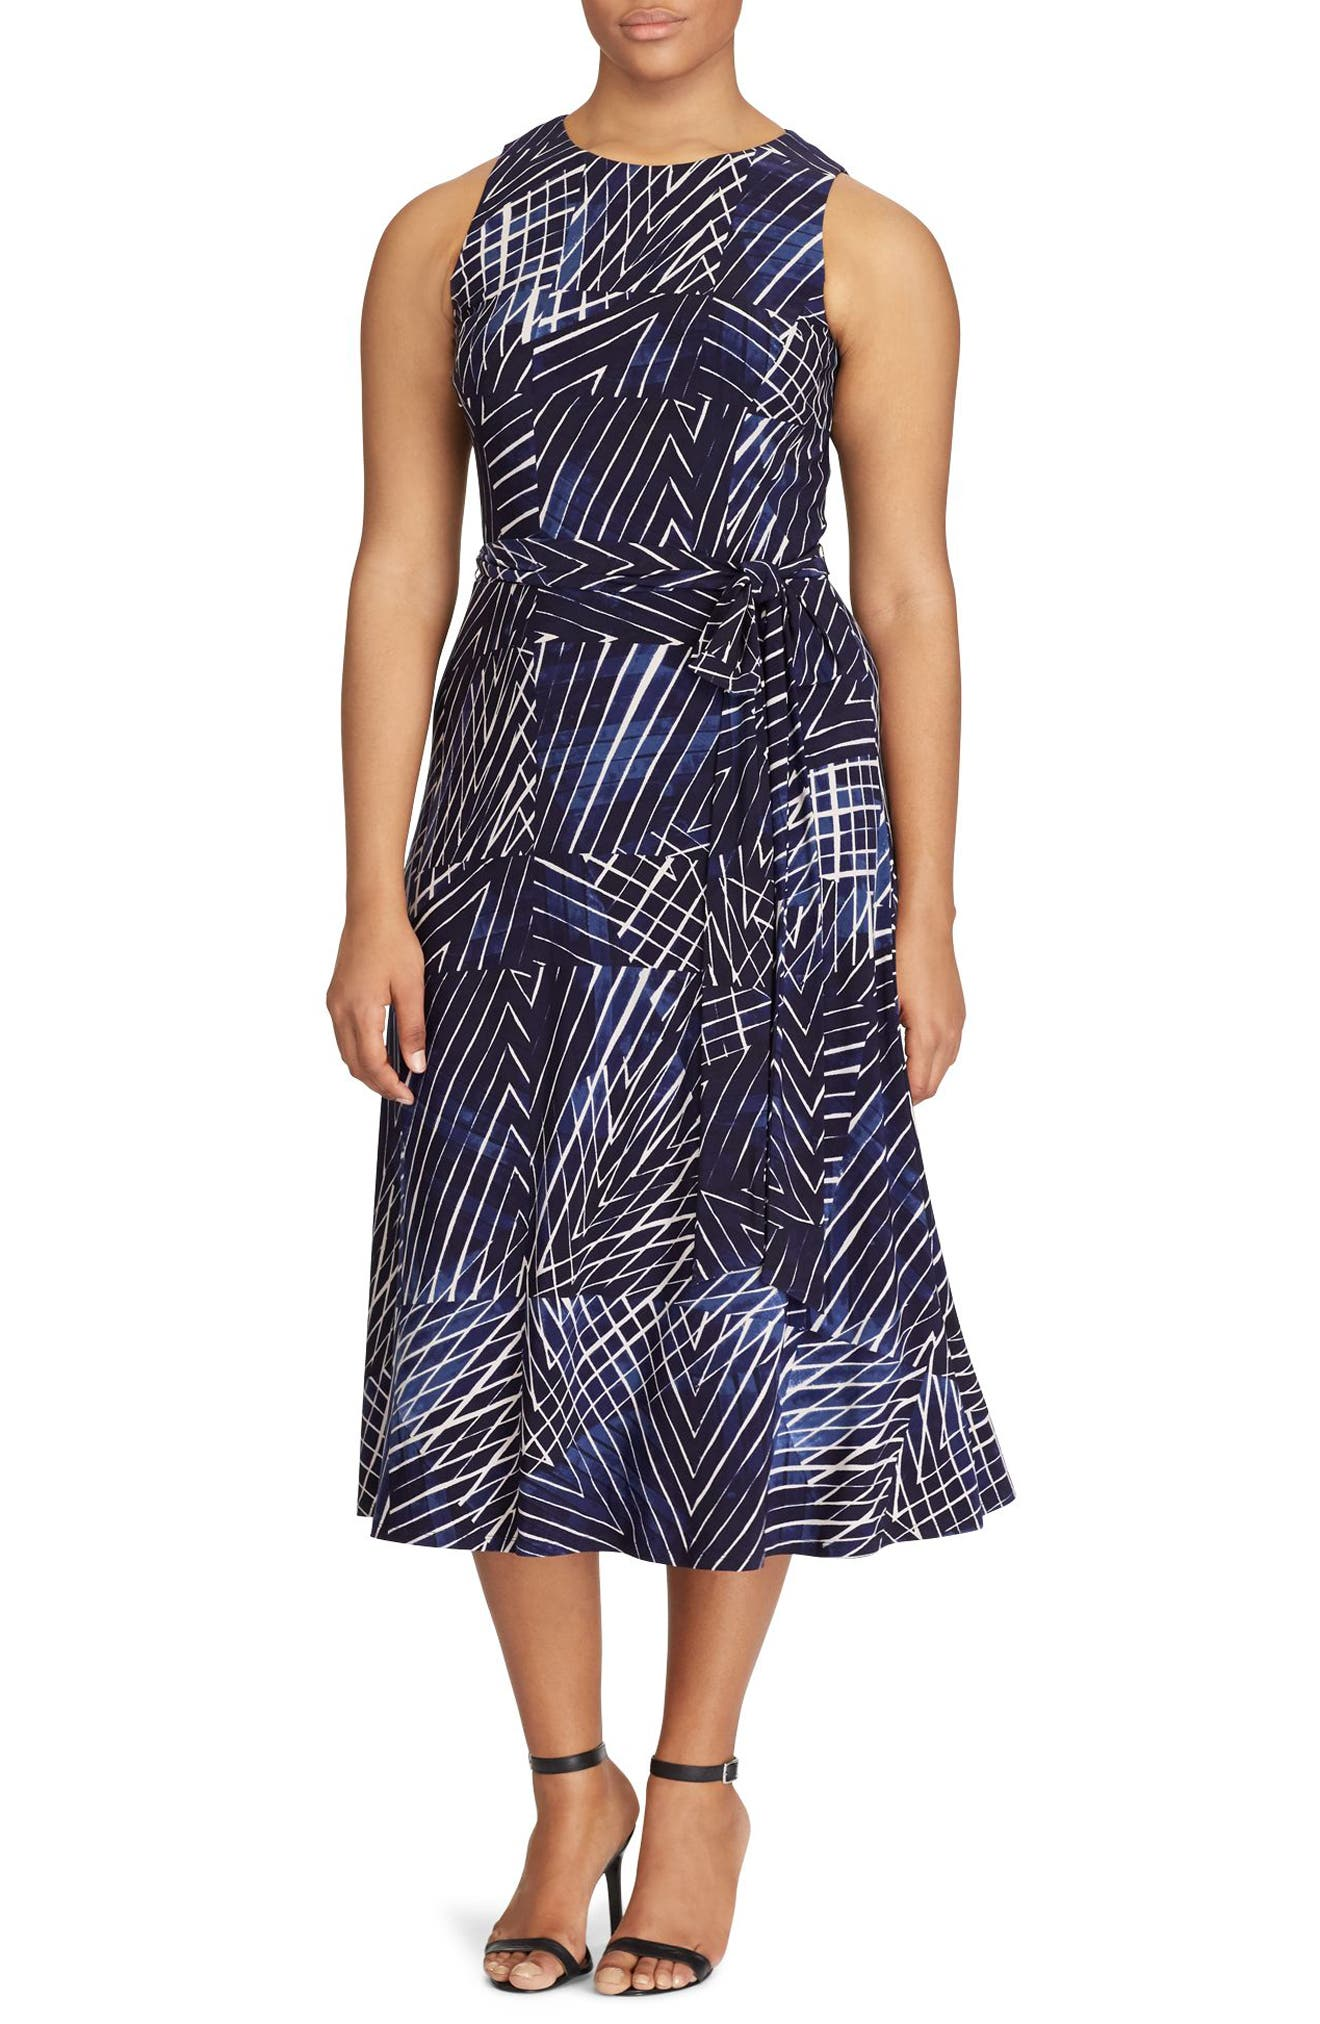 Main Image - Lauren Ralph Lauren Print Jersey Fit & Flare Dress (Plus Size)